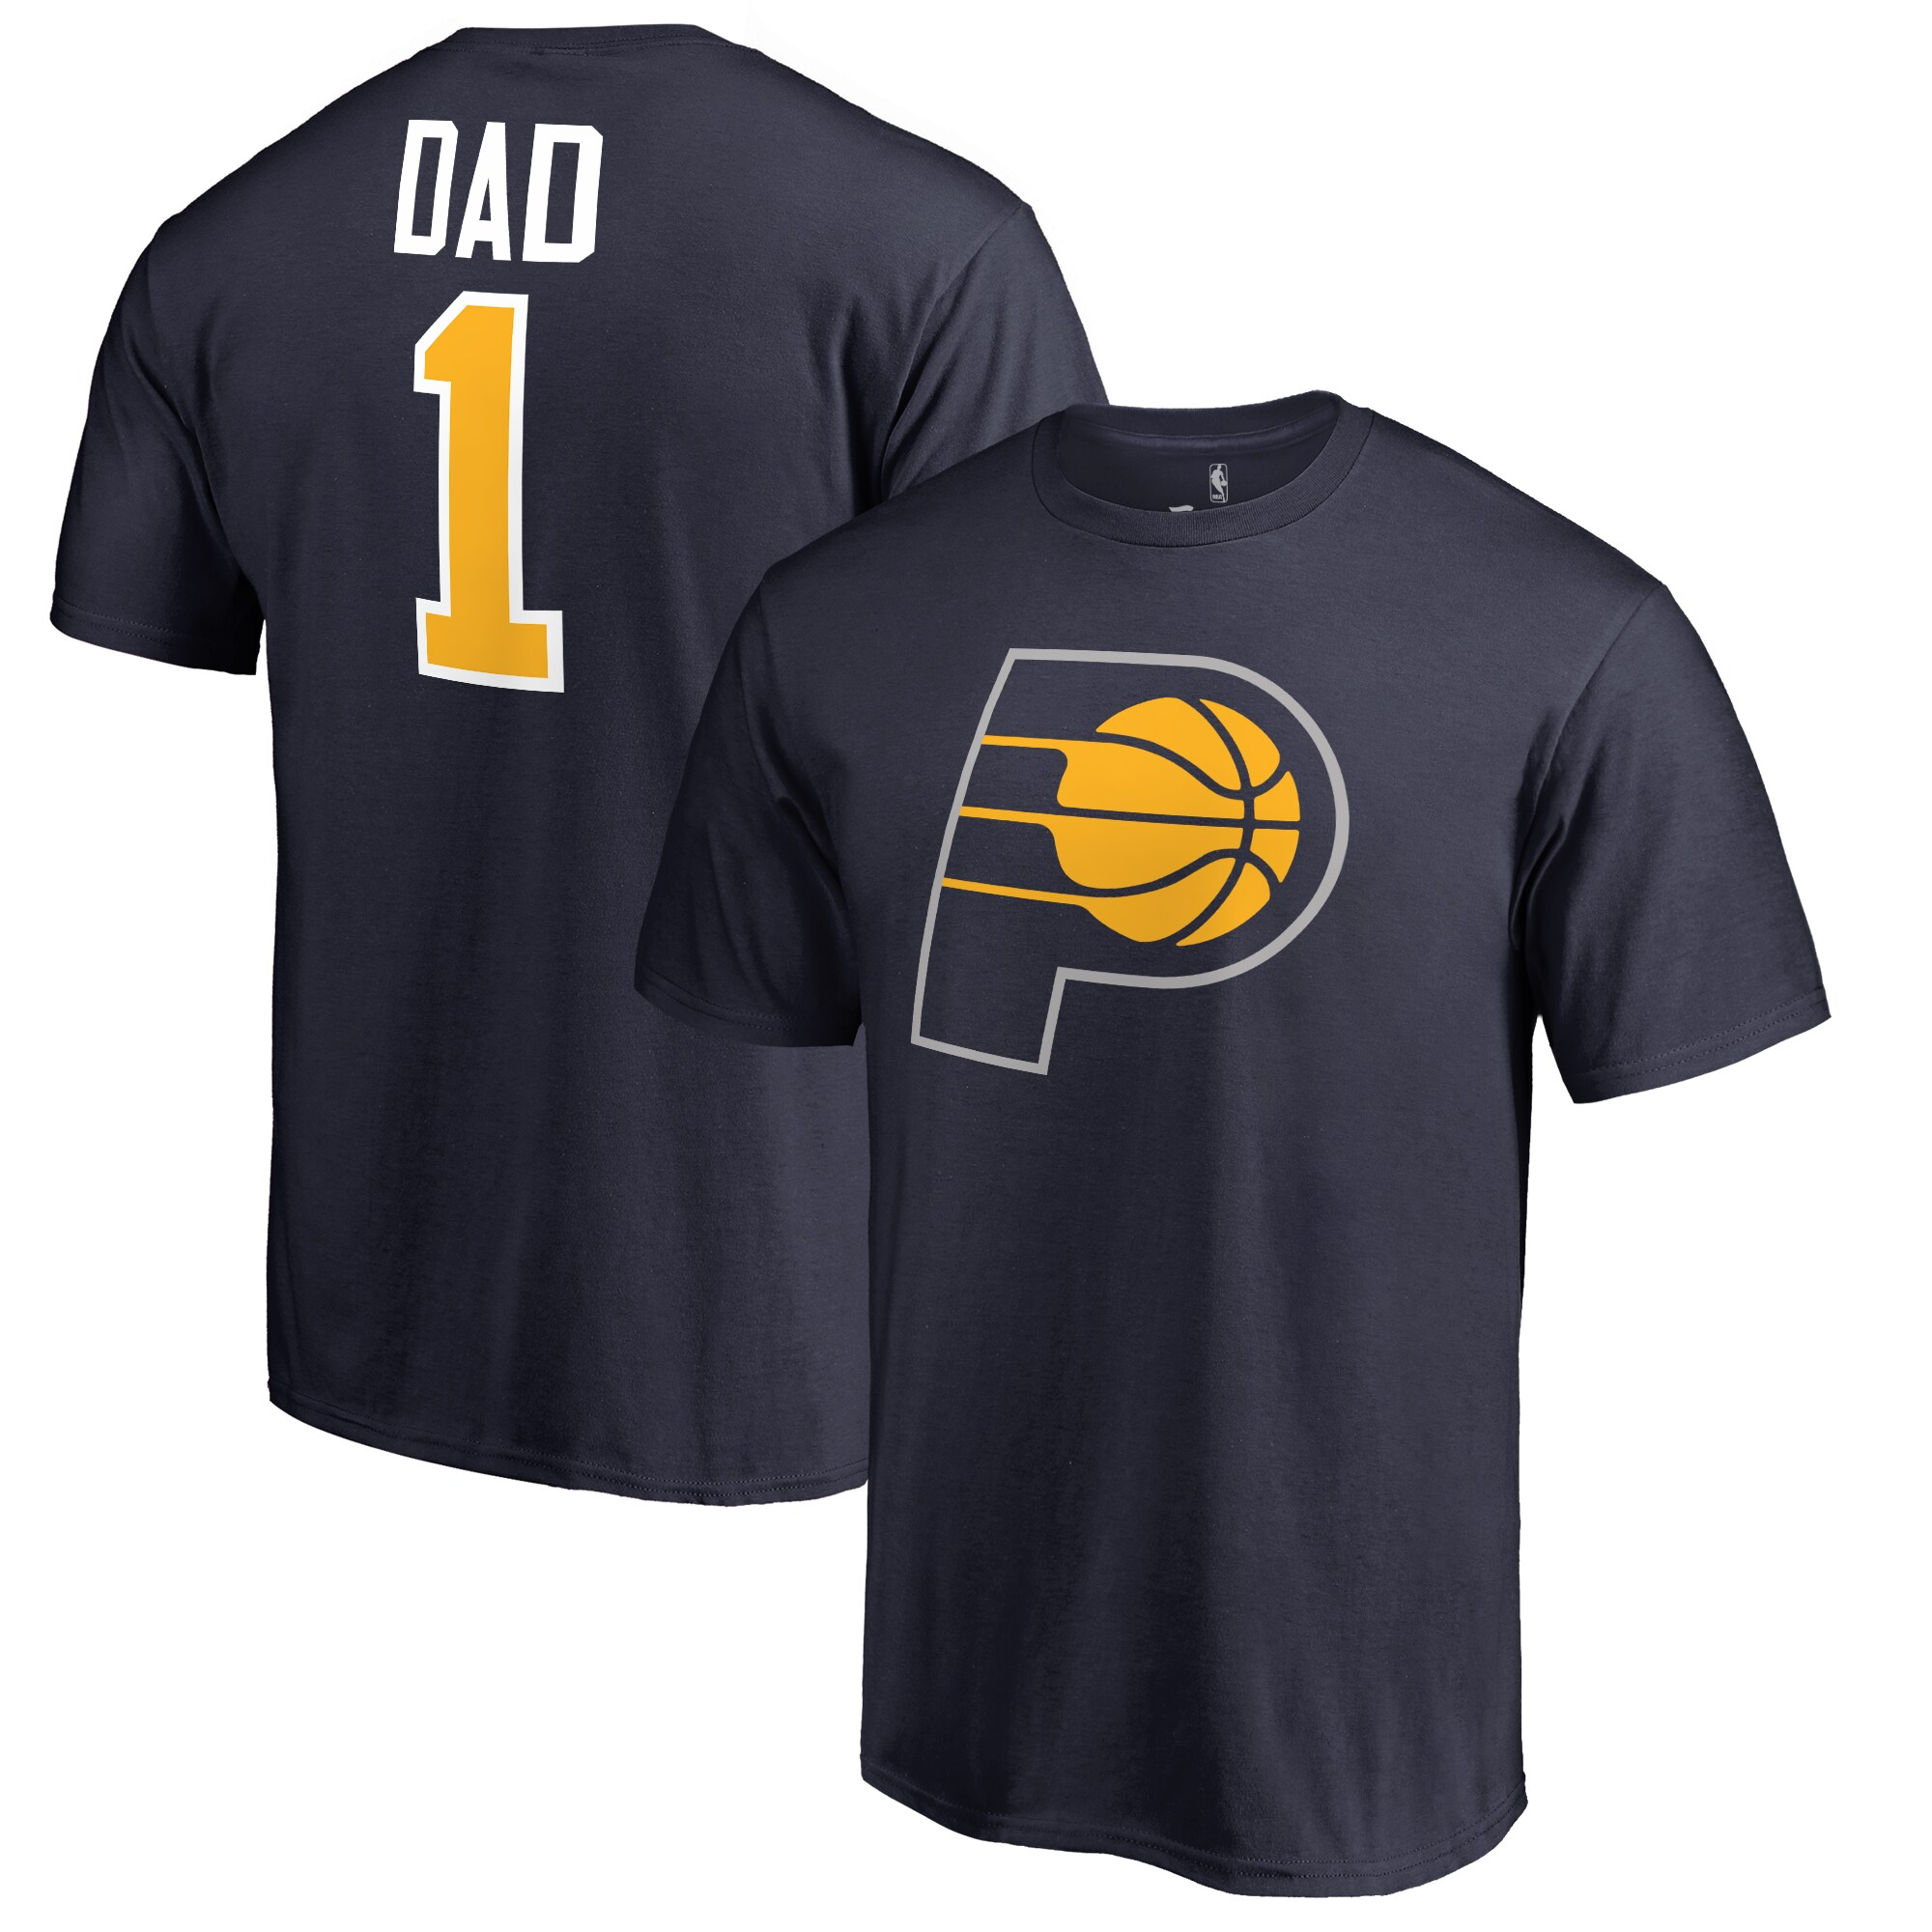 Indiana Pacers #1 Dad T-Shirt - Navy